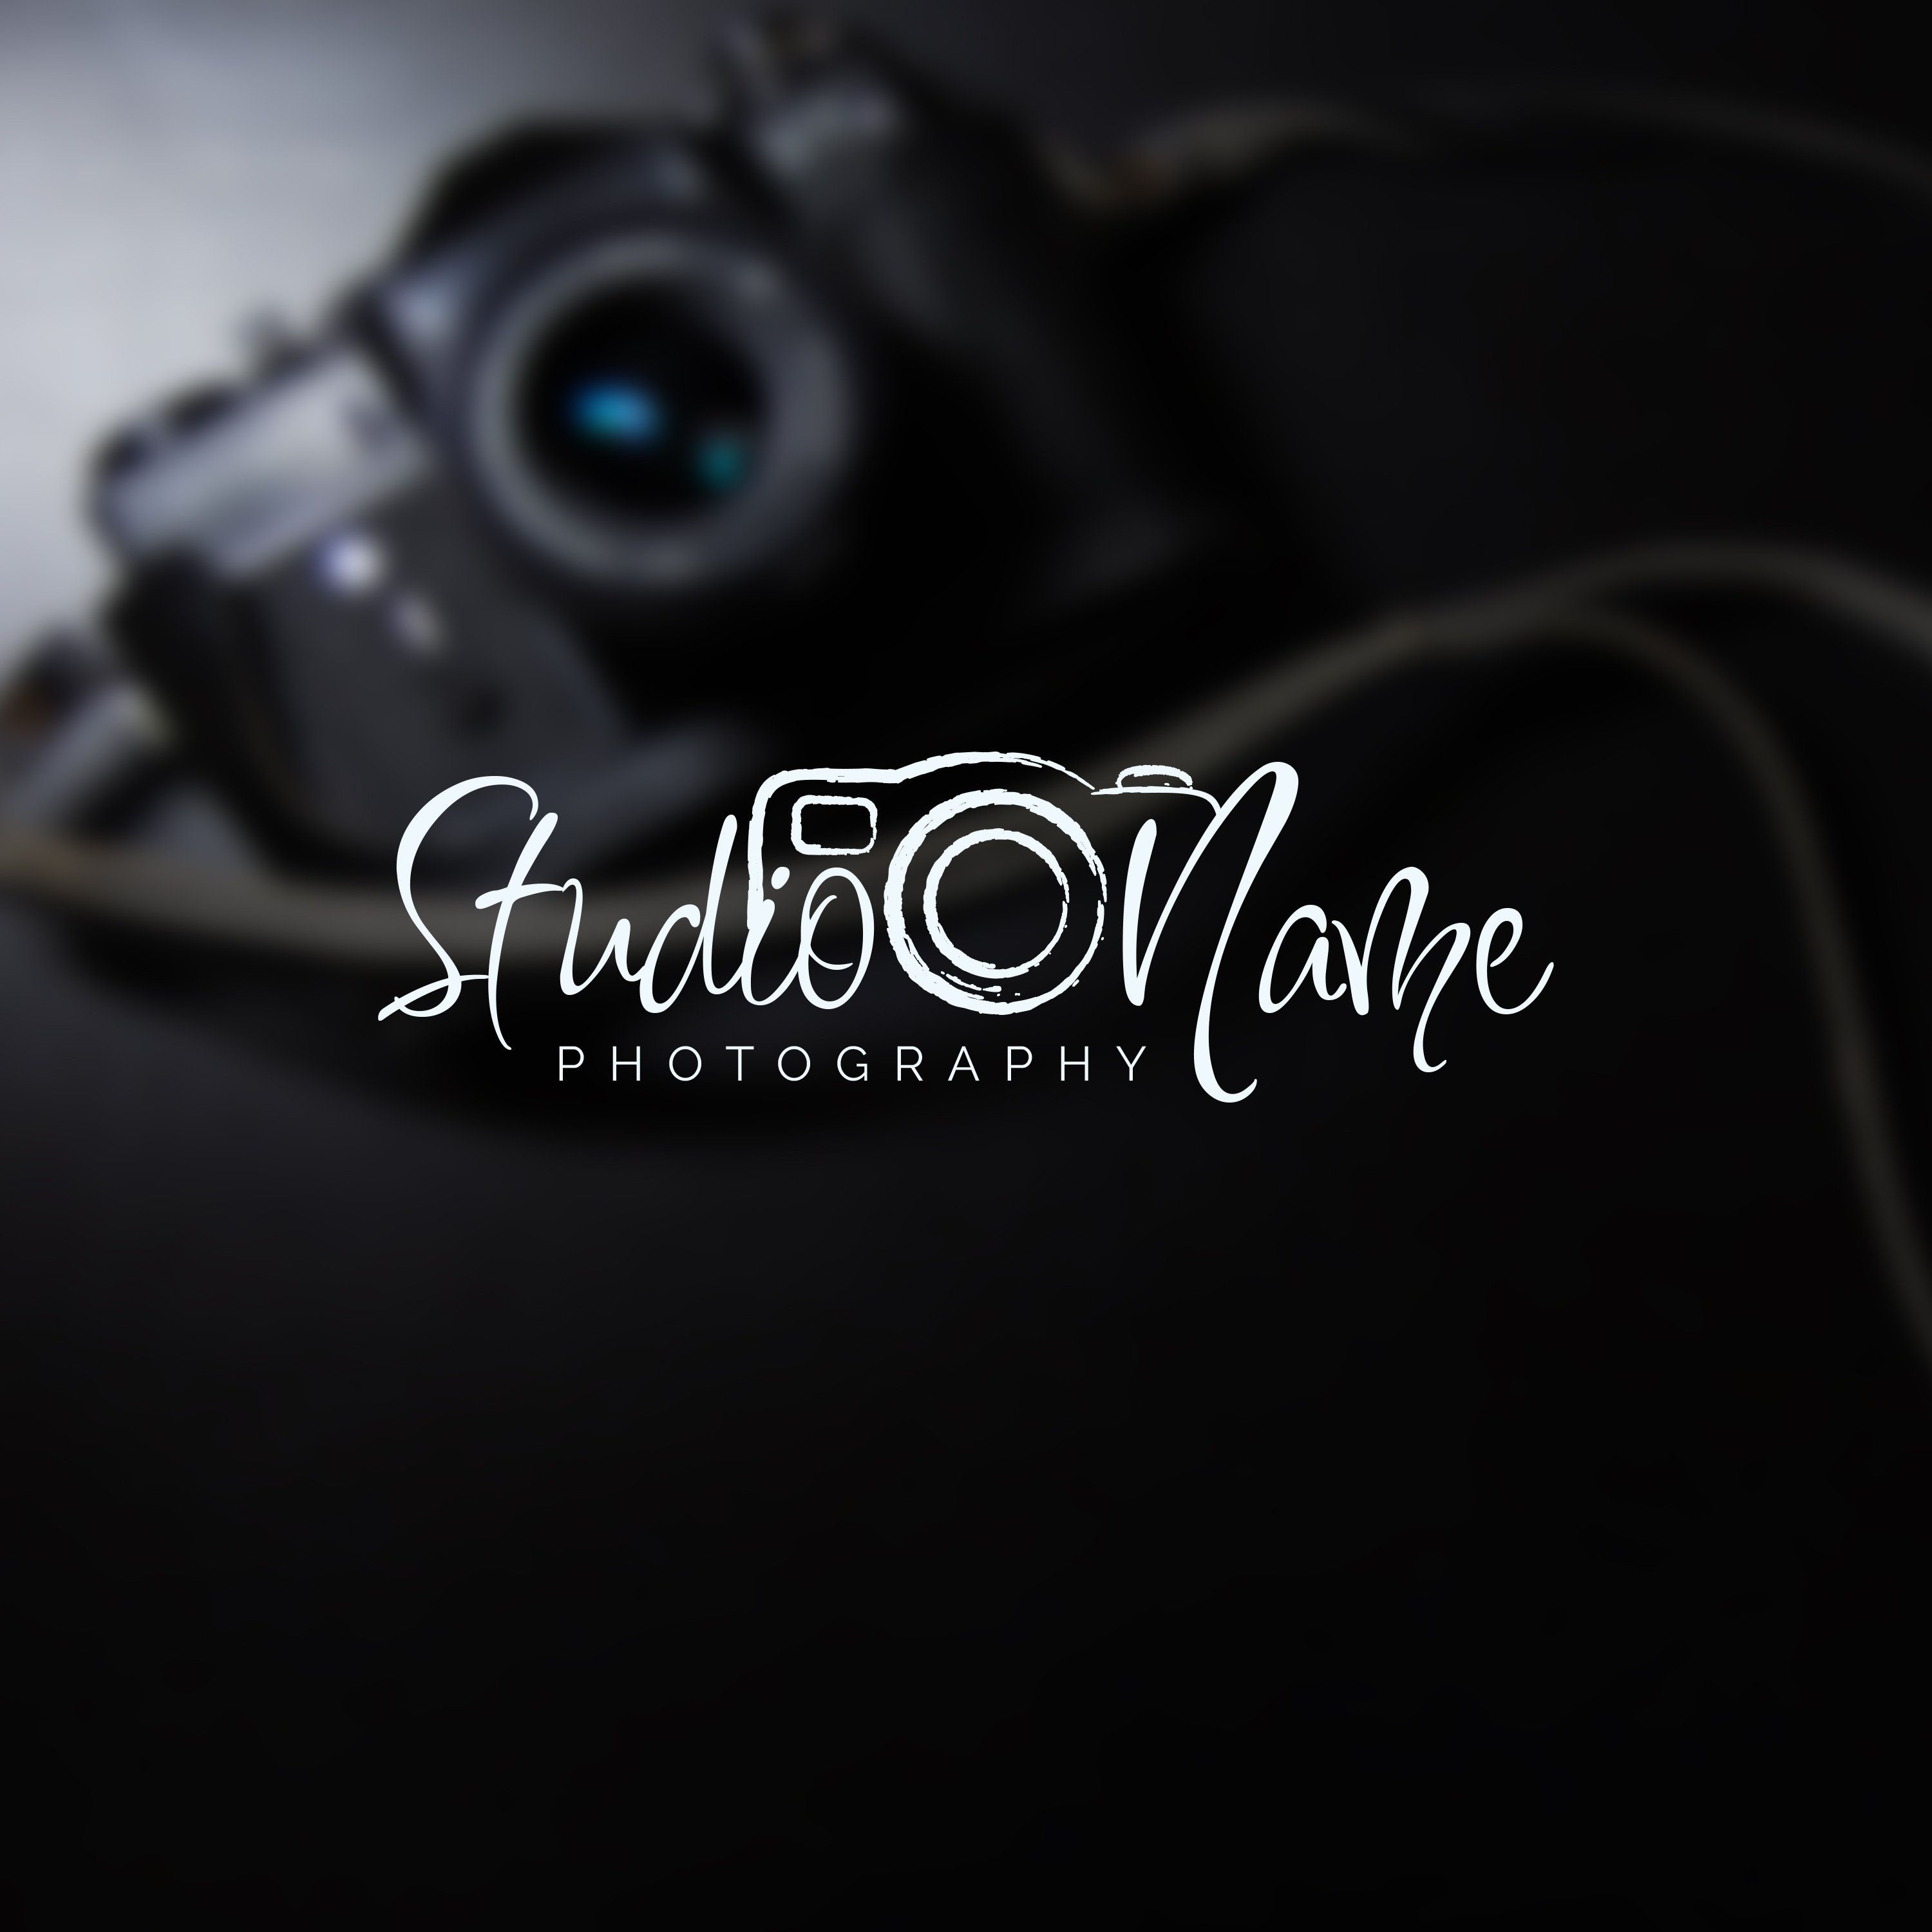 Instant Logo Design, Photography Logo and Watermark